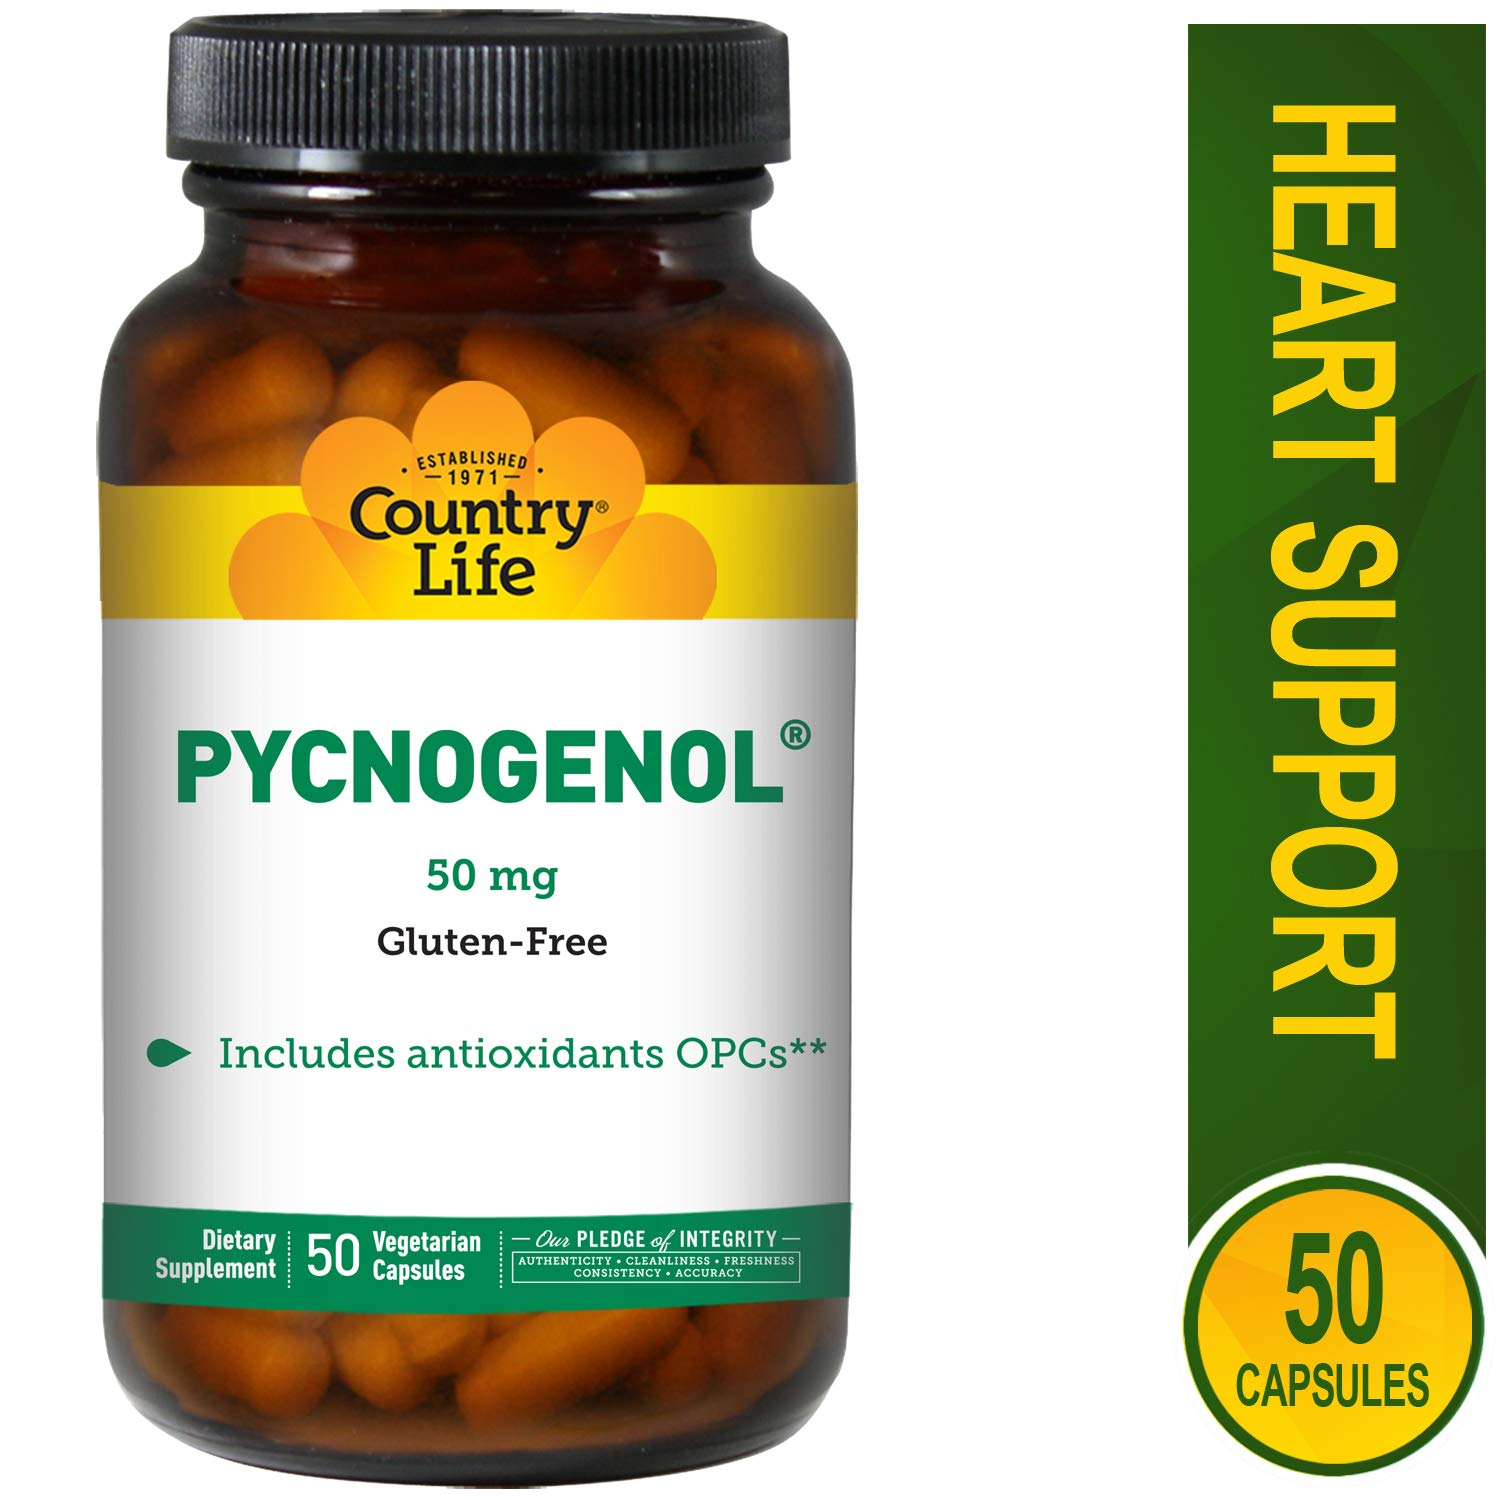 Country Life Pycnogenol, 50 mg - 50 Vegetarian Capsules